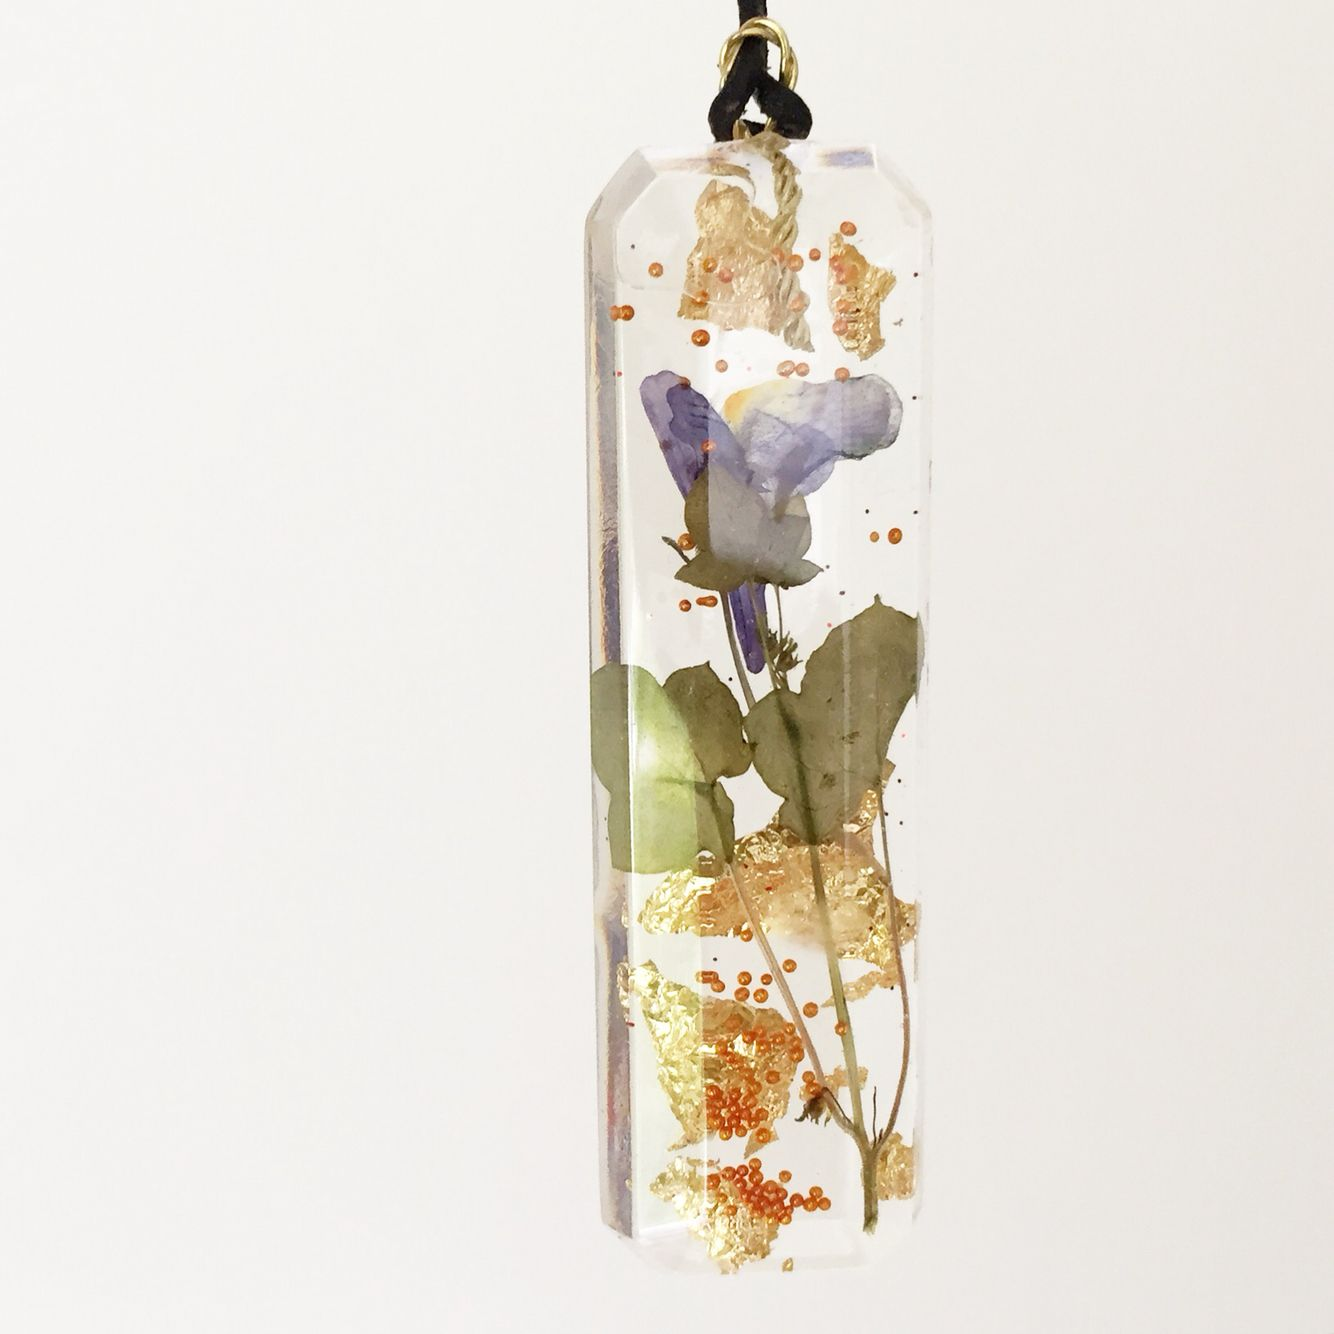 My own work. Resin pendant with dried flowers, gold flakes